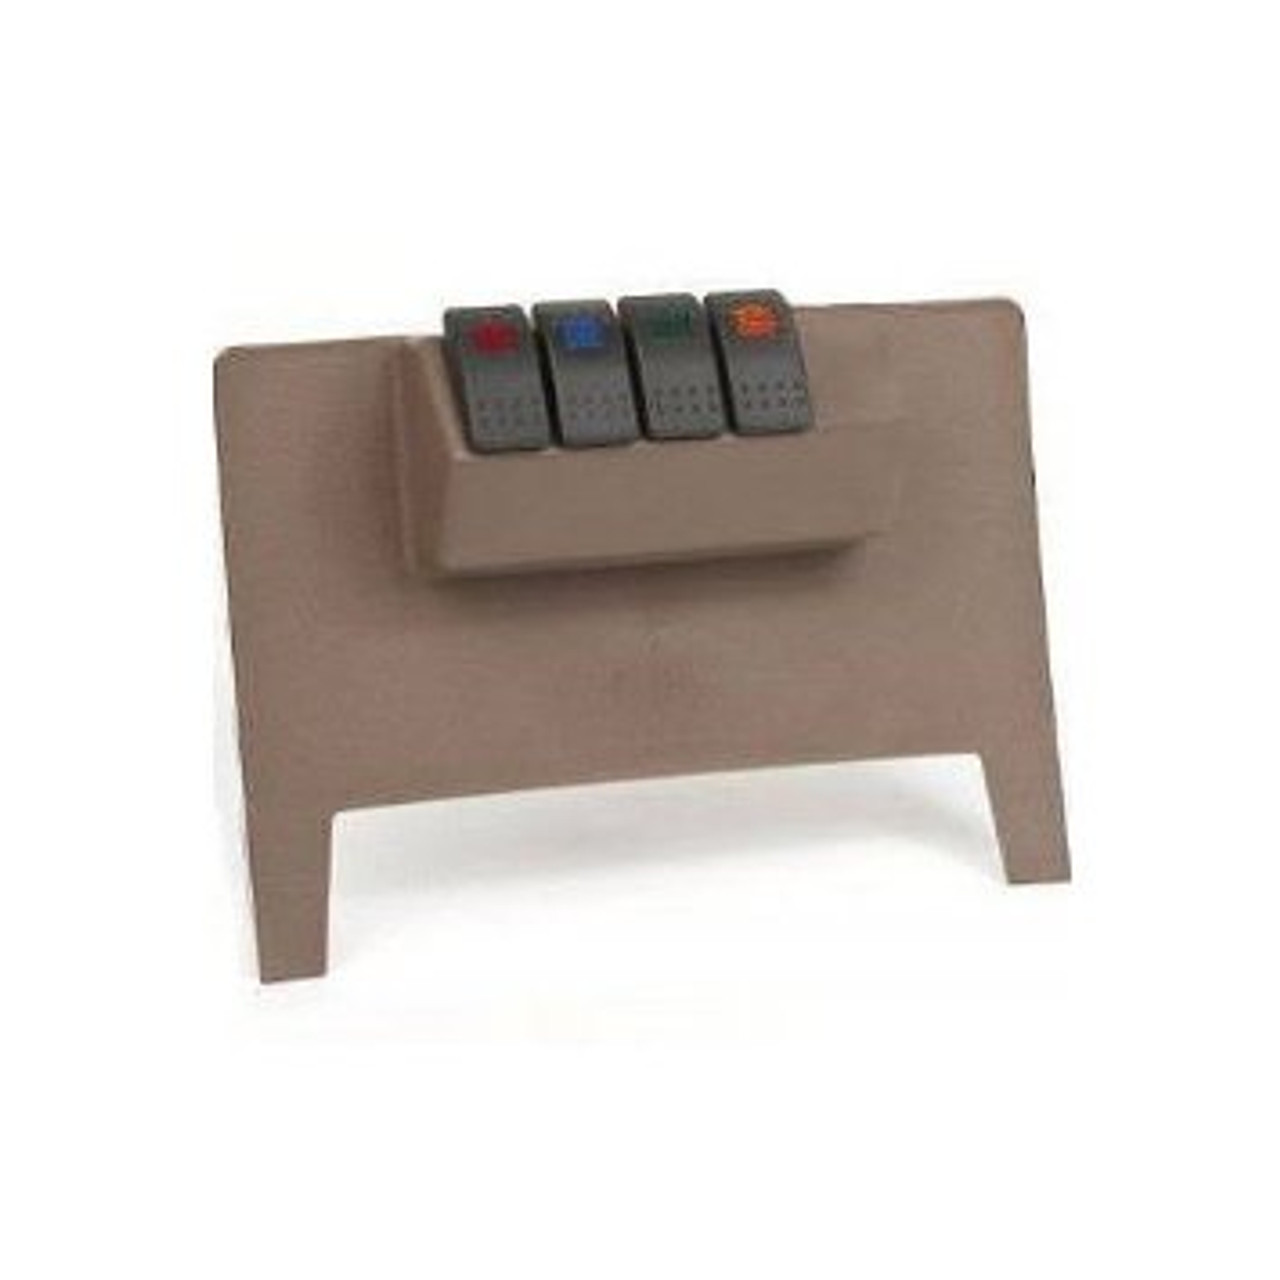 Daystar Lower Dash Switch Panel with Switches for Jeep JK 2011+ in Tan